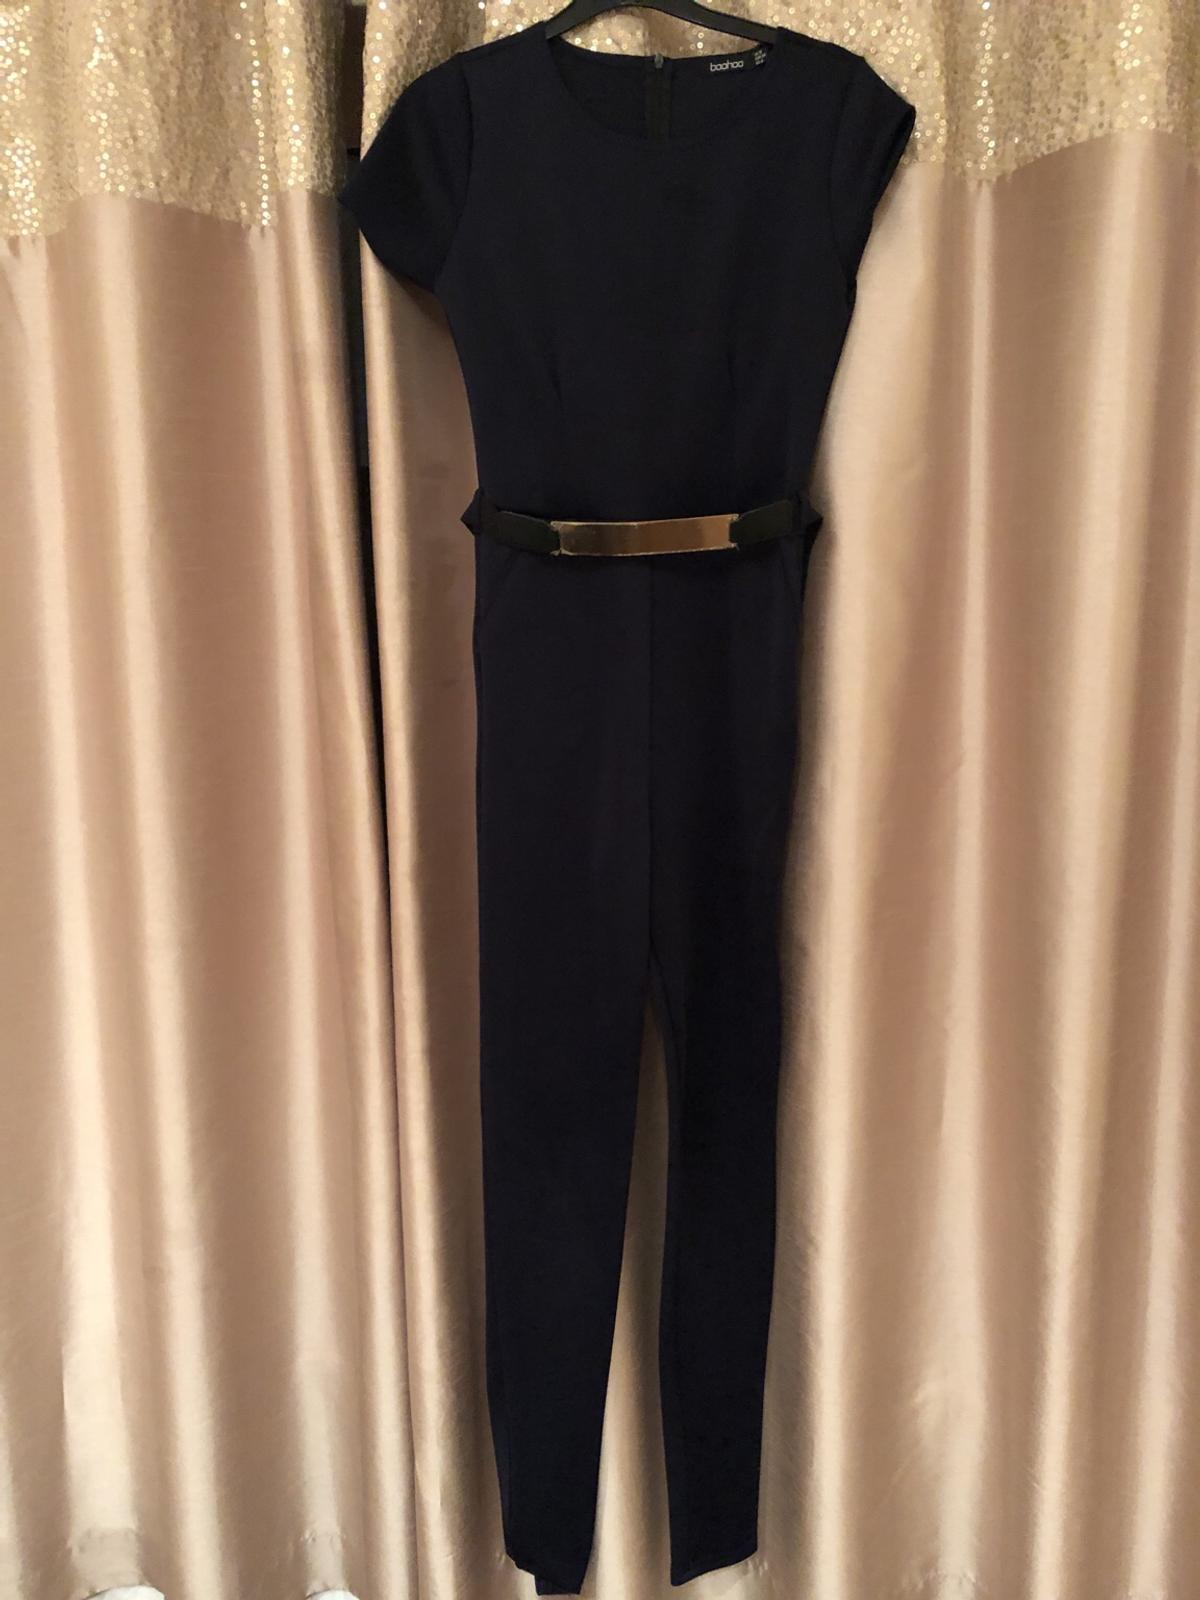 Full length tight fitting jersey material jumpsuit with gold belt. Size 8